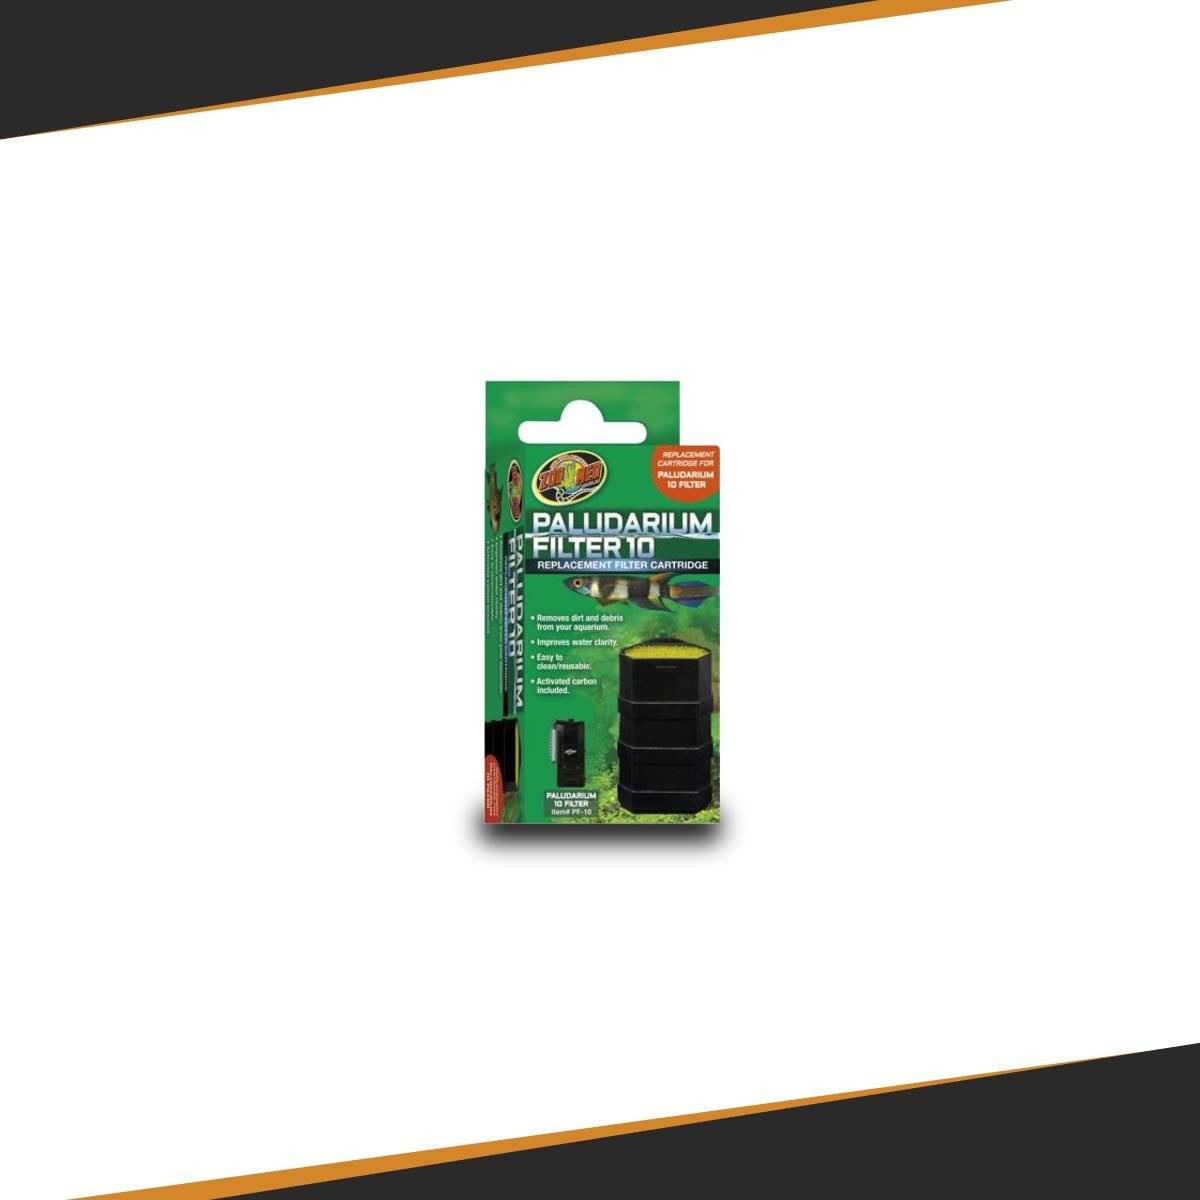 Complete Pack for growing 80cm x 80cm with SpectraPANEL X320 - Horticultural Led Grow Pack